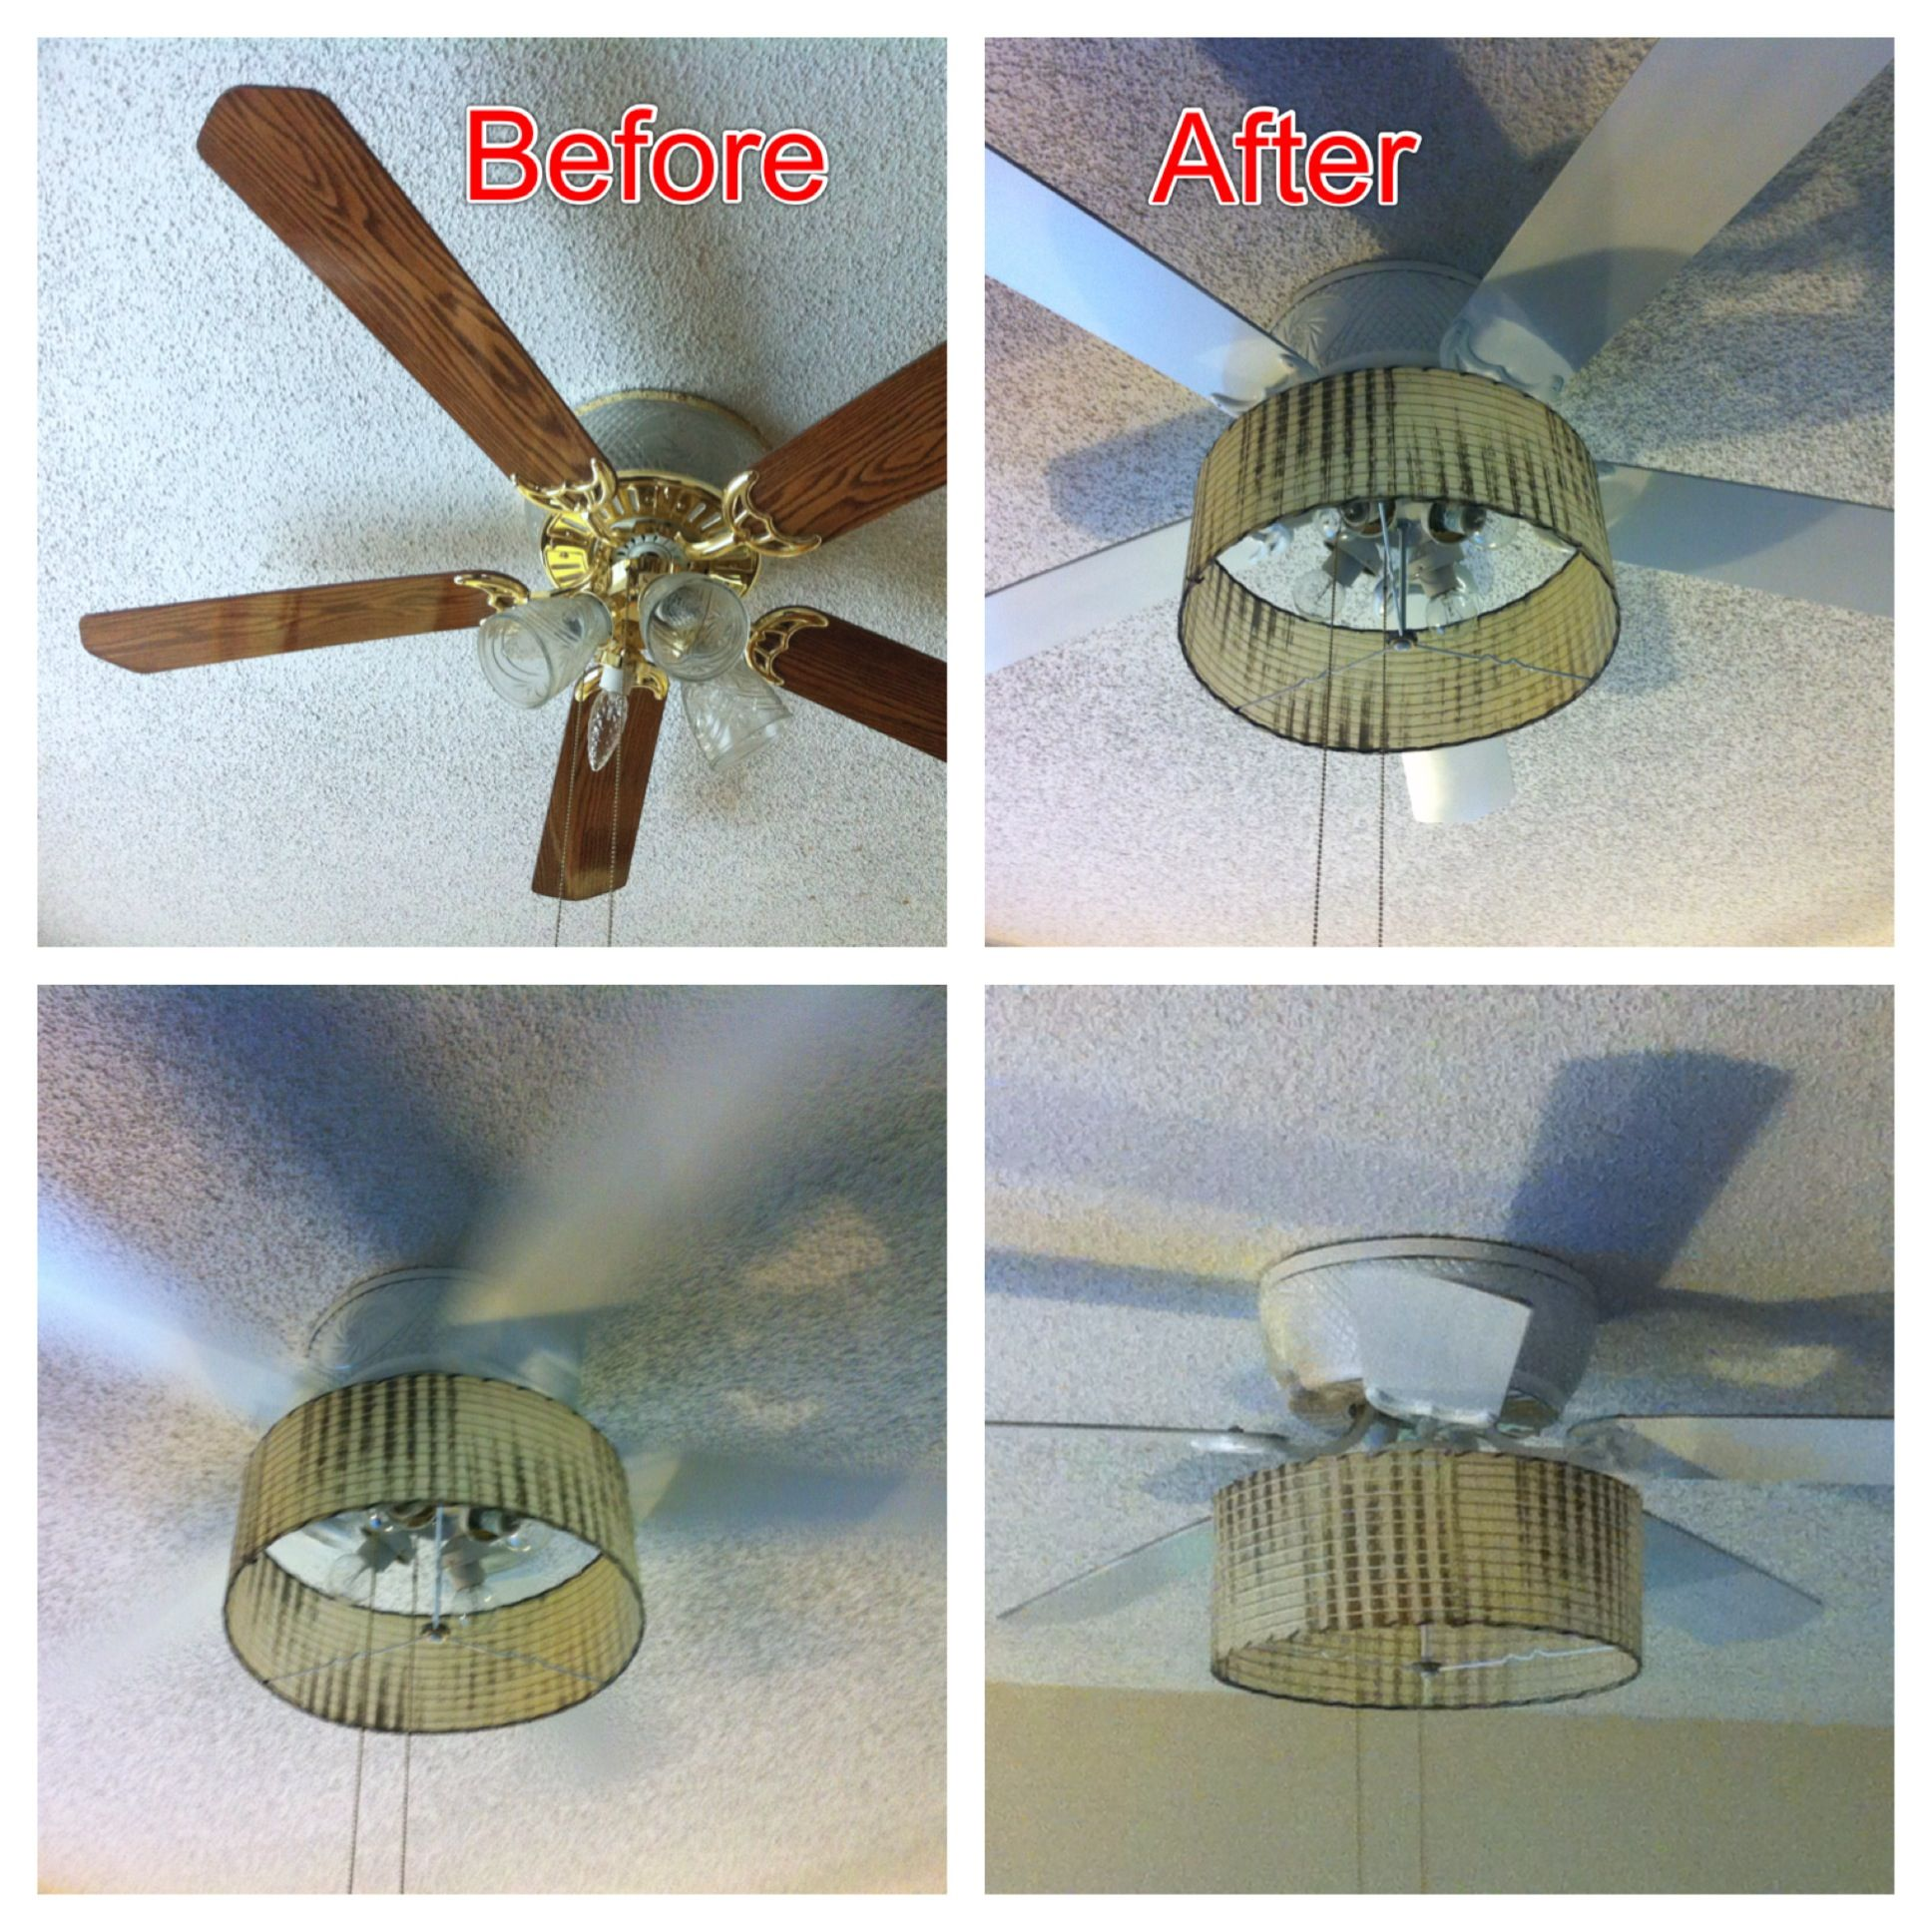 Pin By Erica Lowery On Living Room Ceiling Fan Diy Ceiling Diy Ceiling Fan